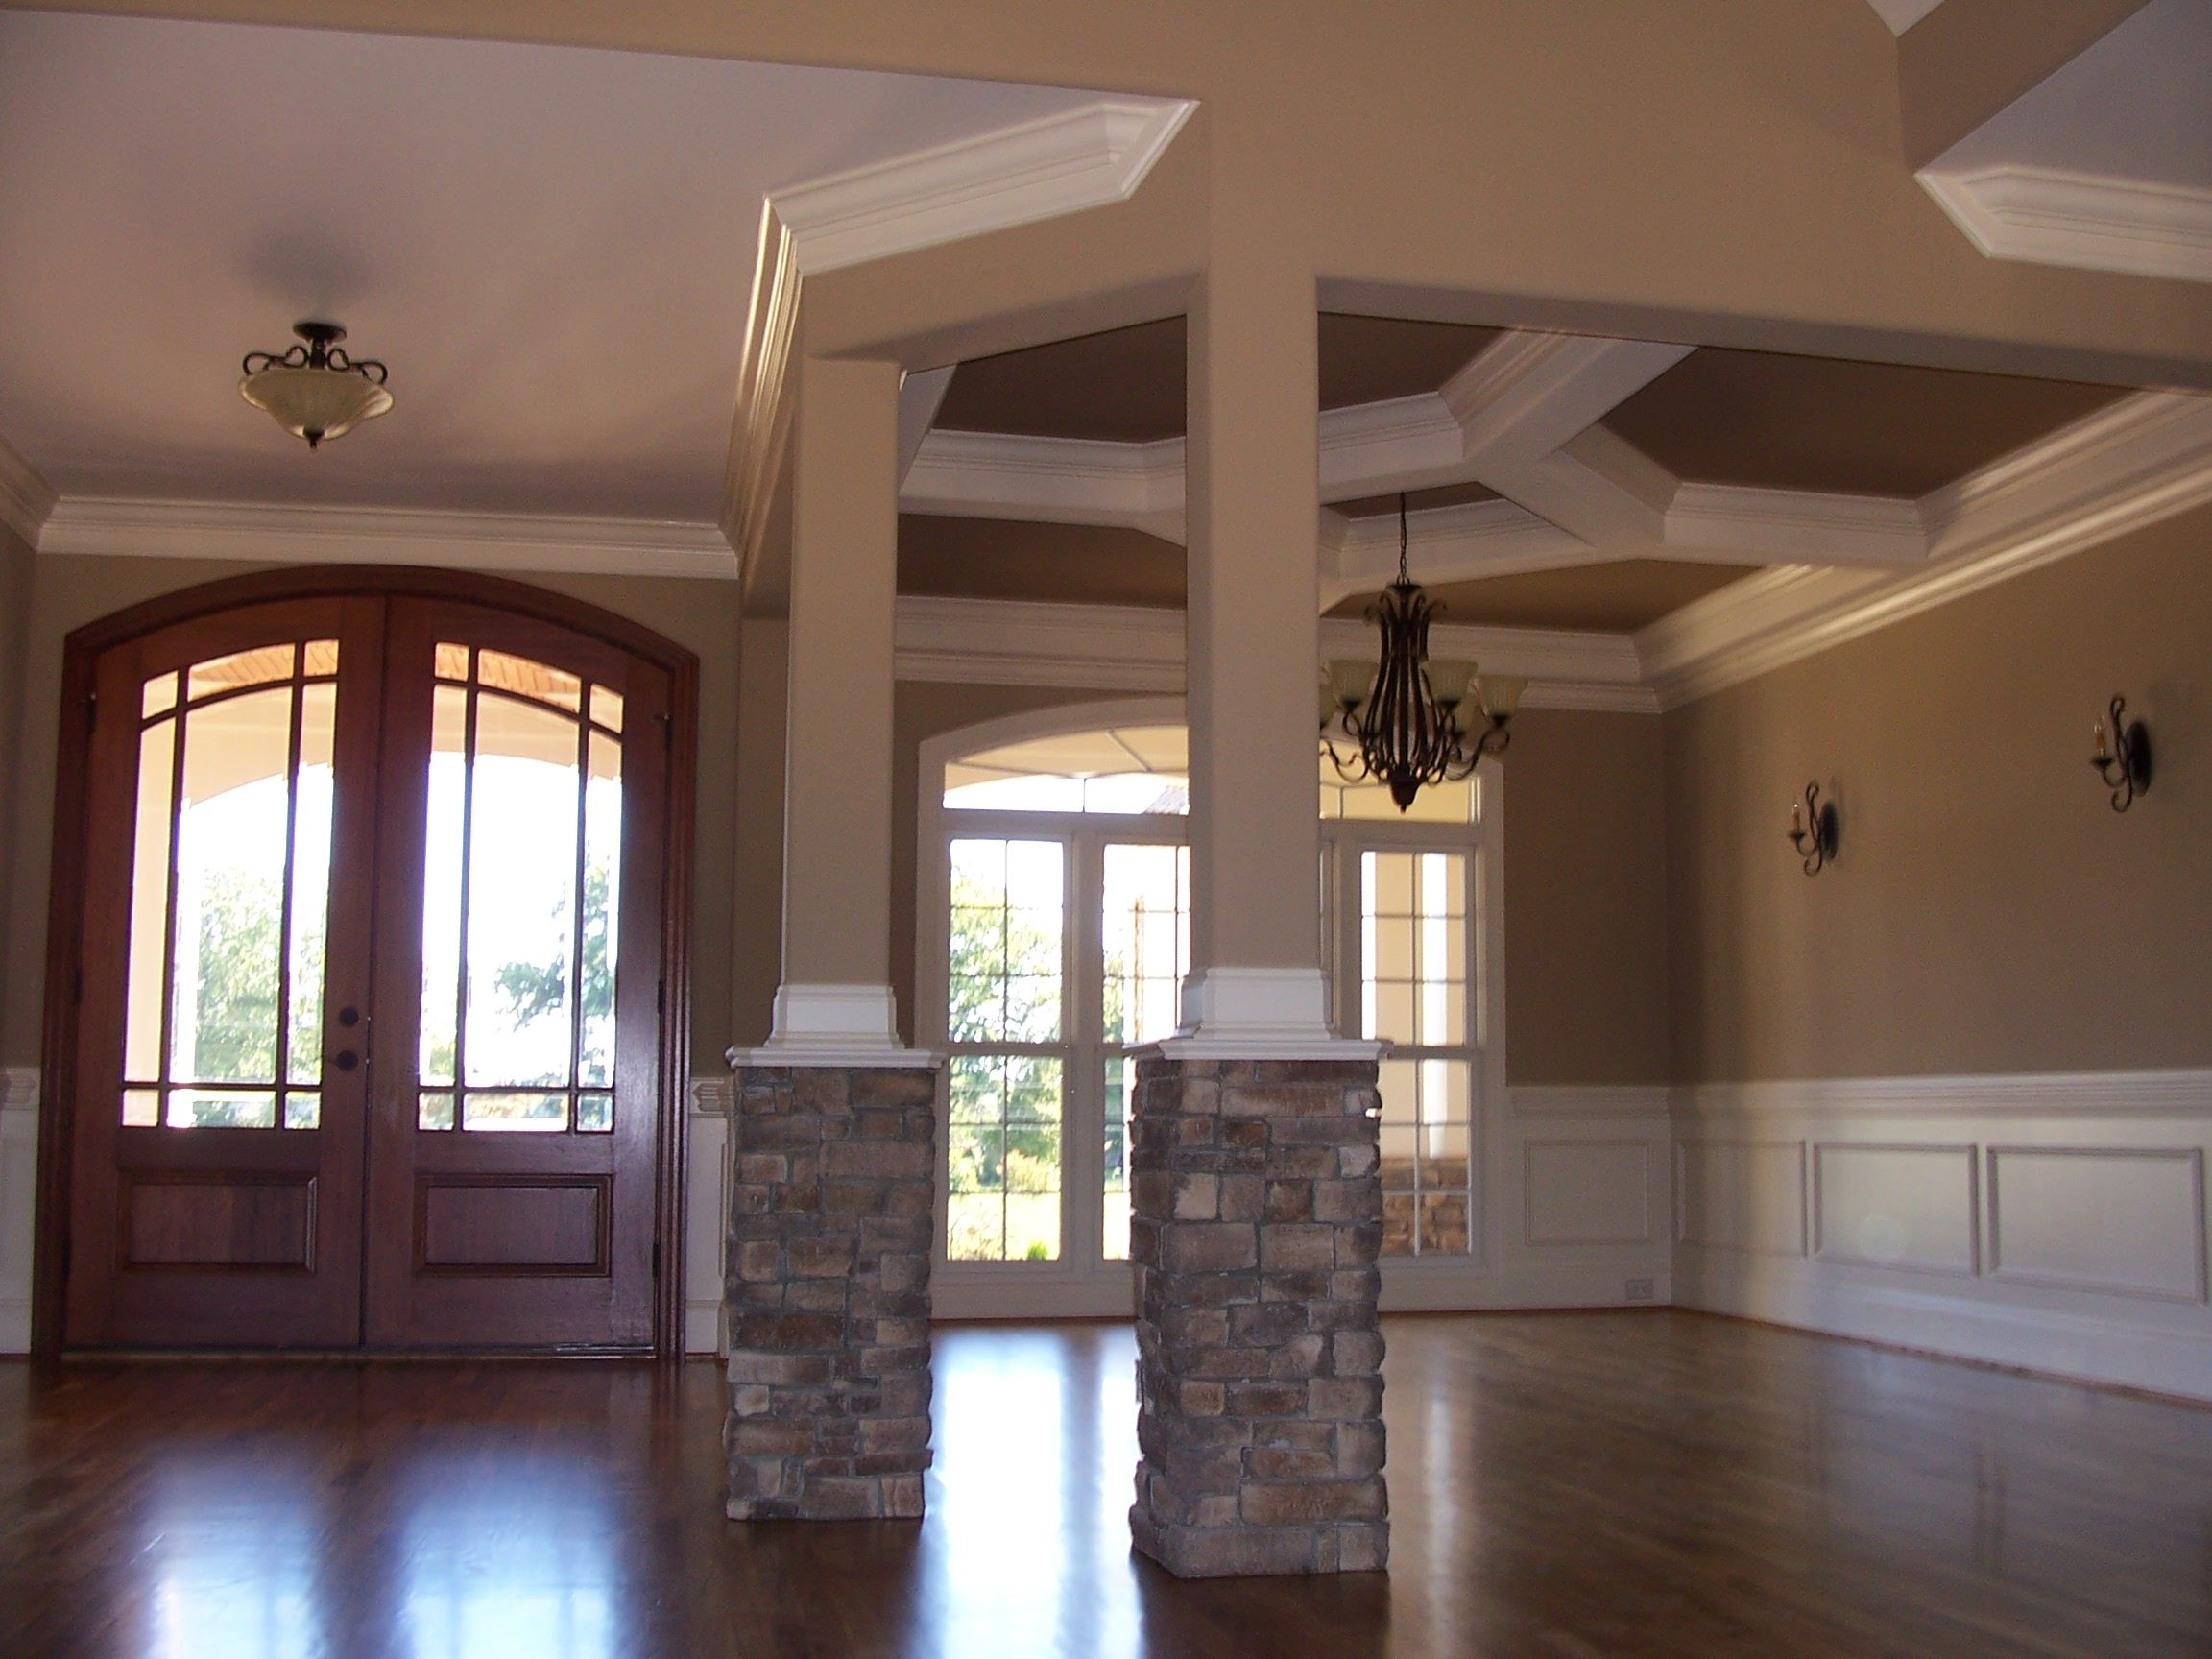 Home Interior Painting Exterior Classy Pictures Of Interior Paint Colors  Phone 704.746.8170 ~ Fax . Inspiration Design